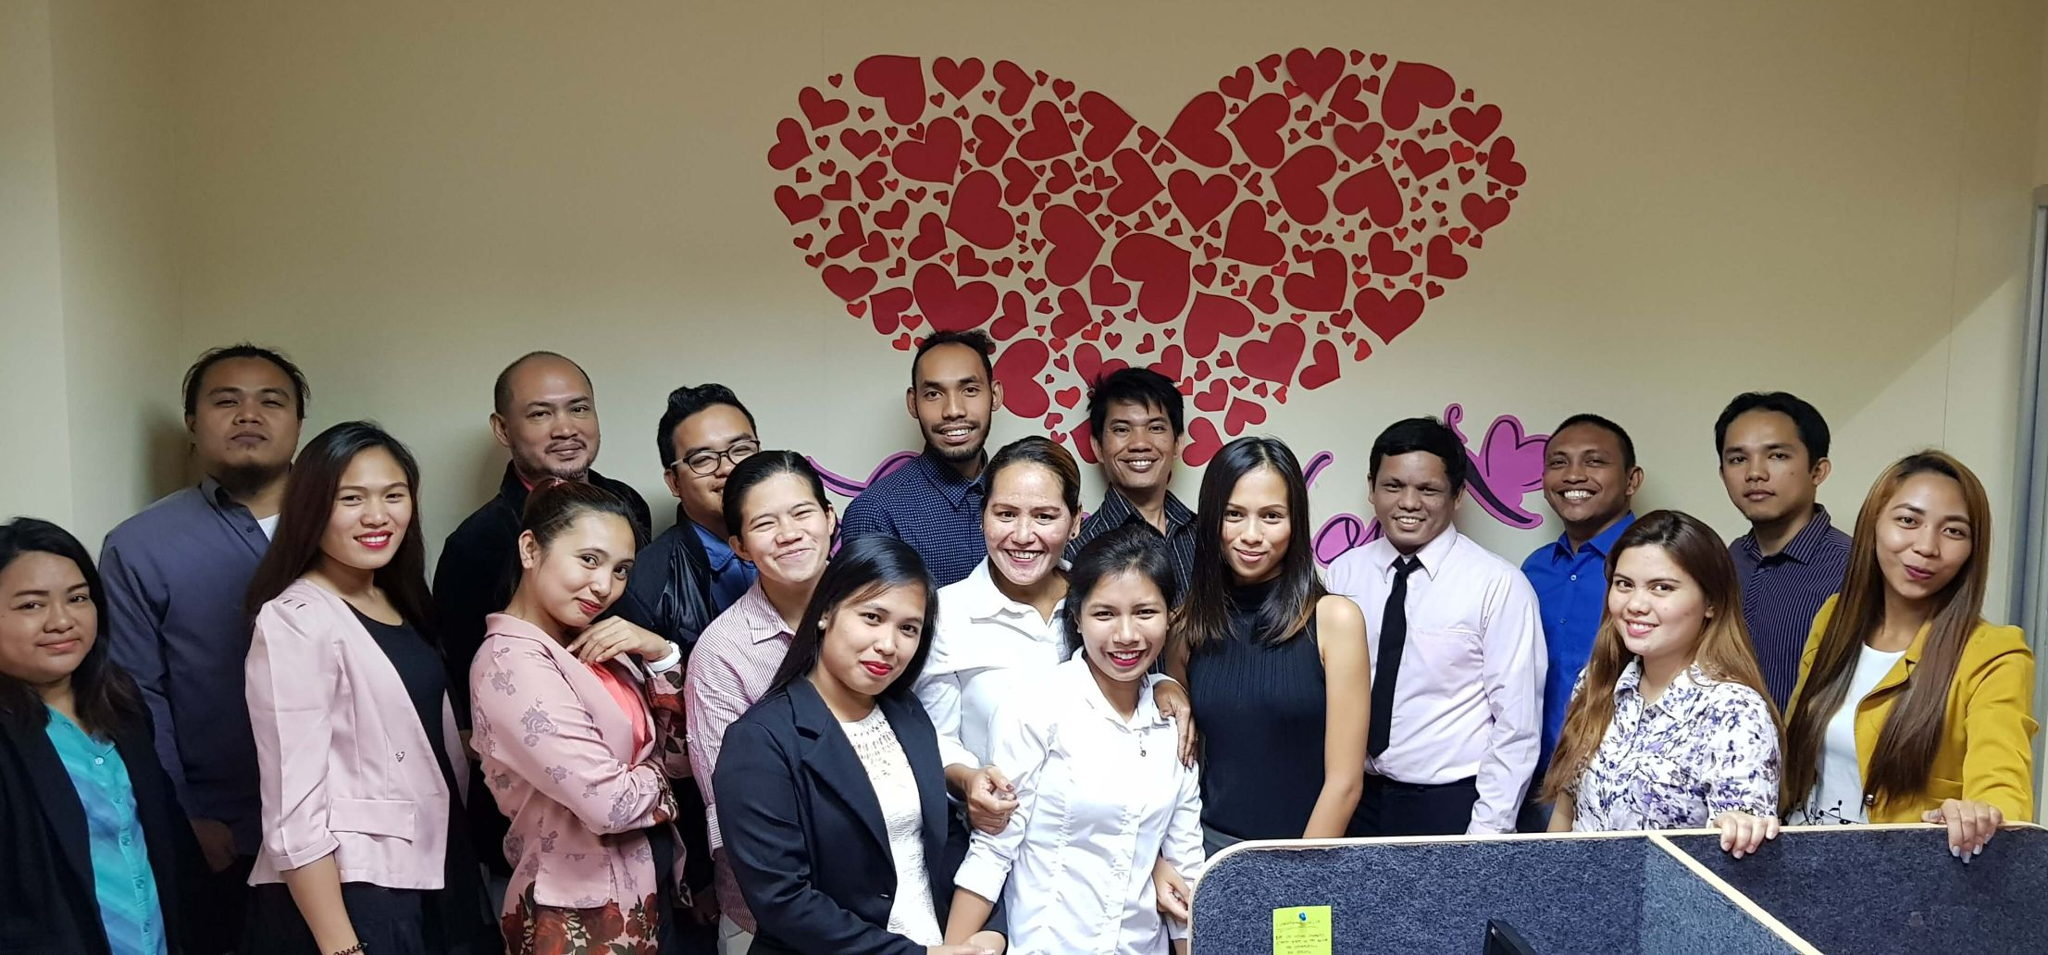 OBI Services About Us Group Pic with Heart Desktop View Image